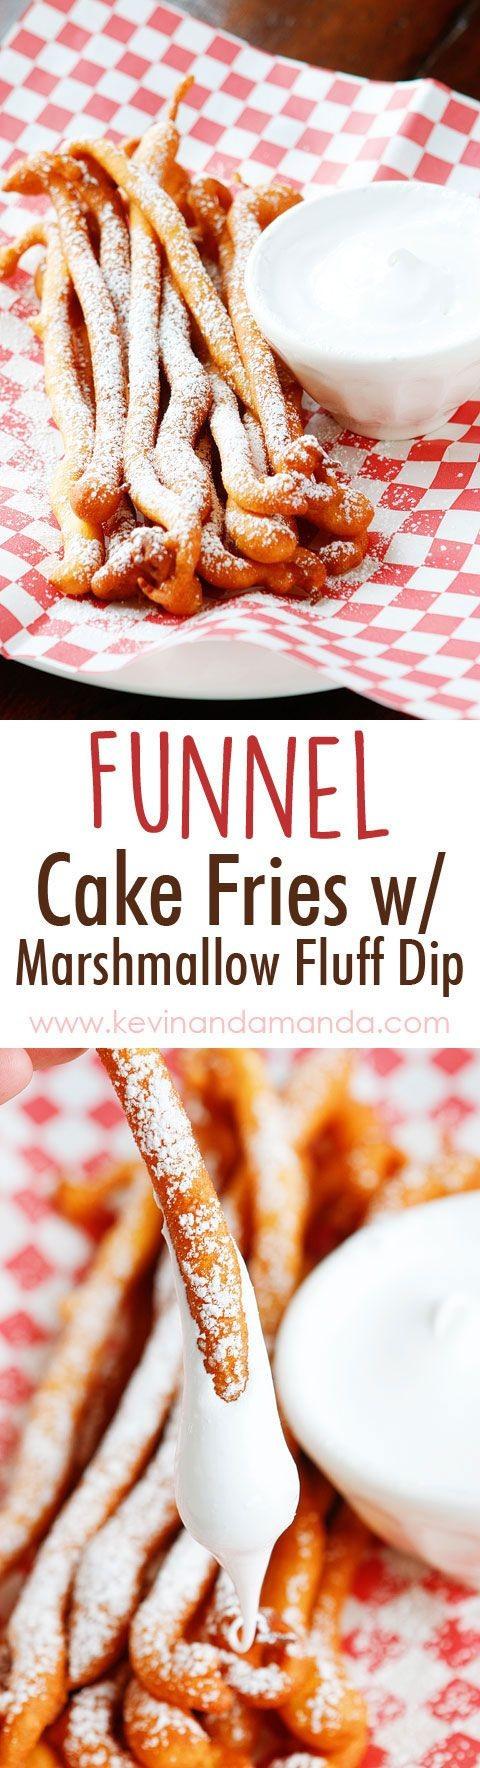 Funnel Cake Fries with Marshmallow Fluff Dip - So fun!! Super easy method, what a great idea! #funnel